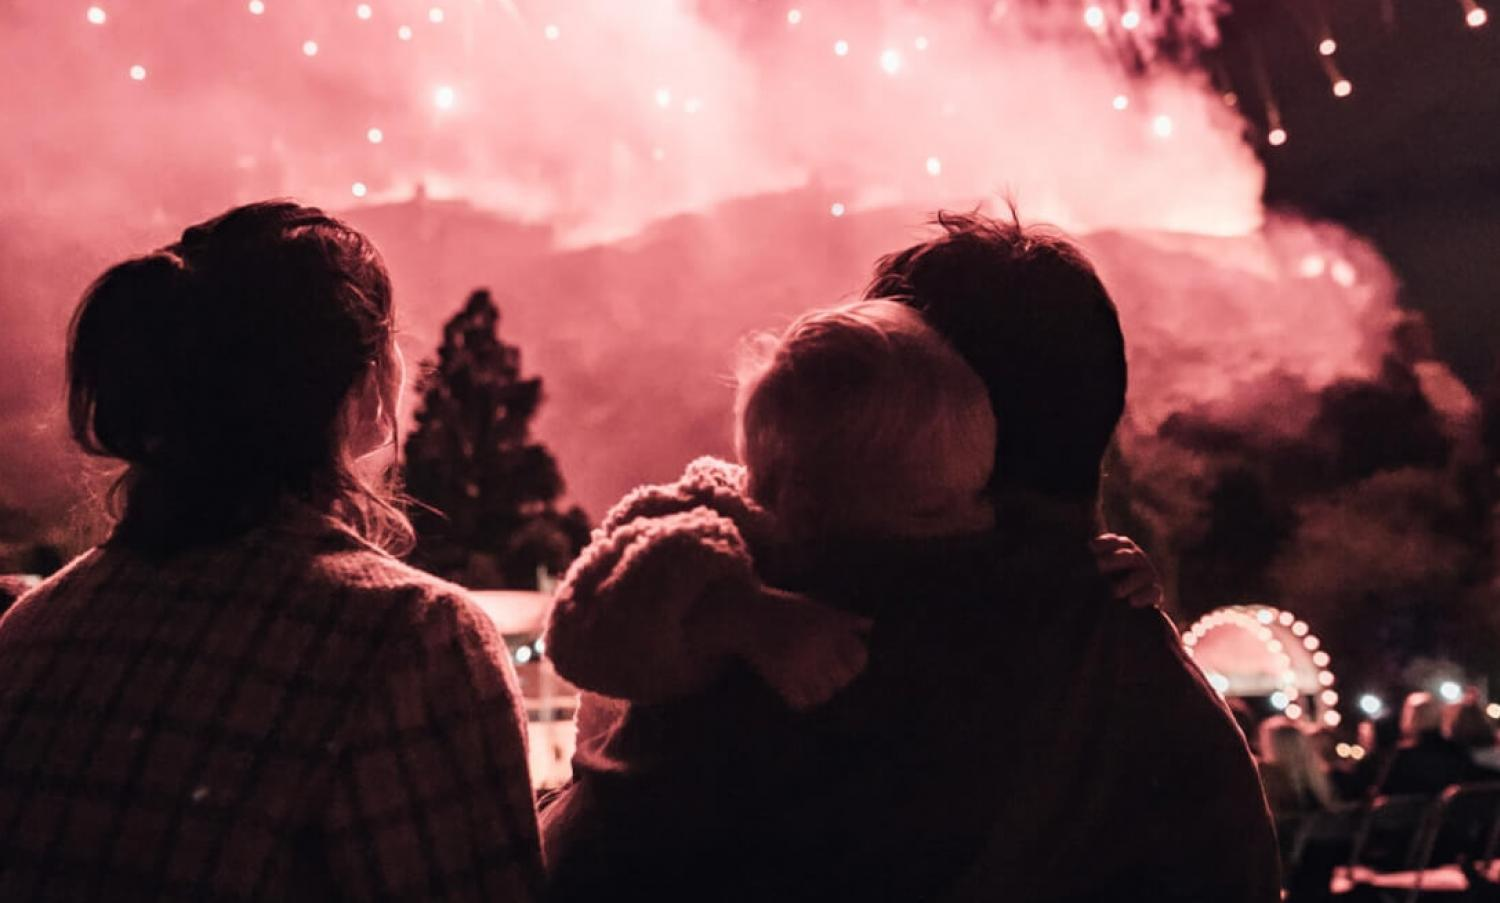 Parents and child at the festival fireworks concert in Princes Street Gardens